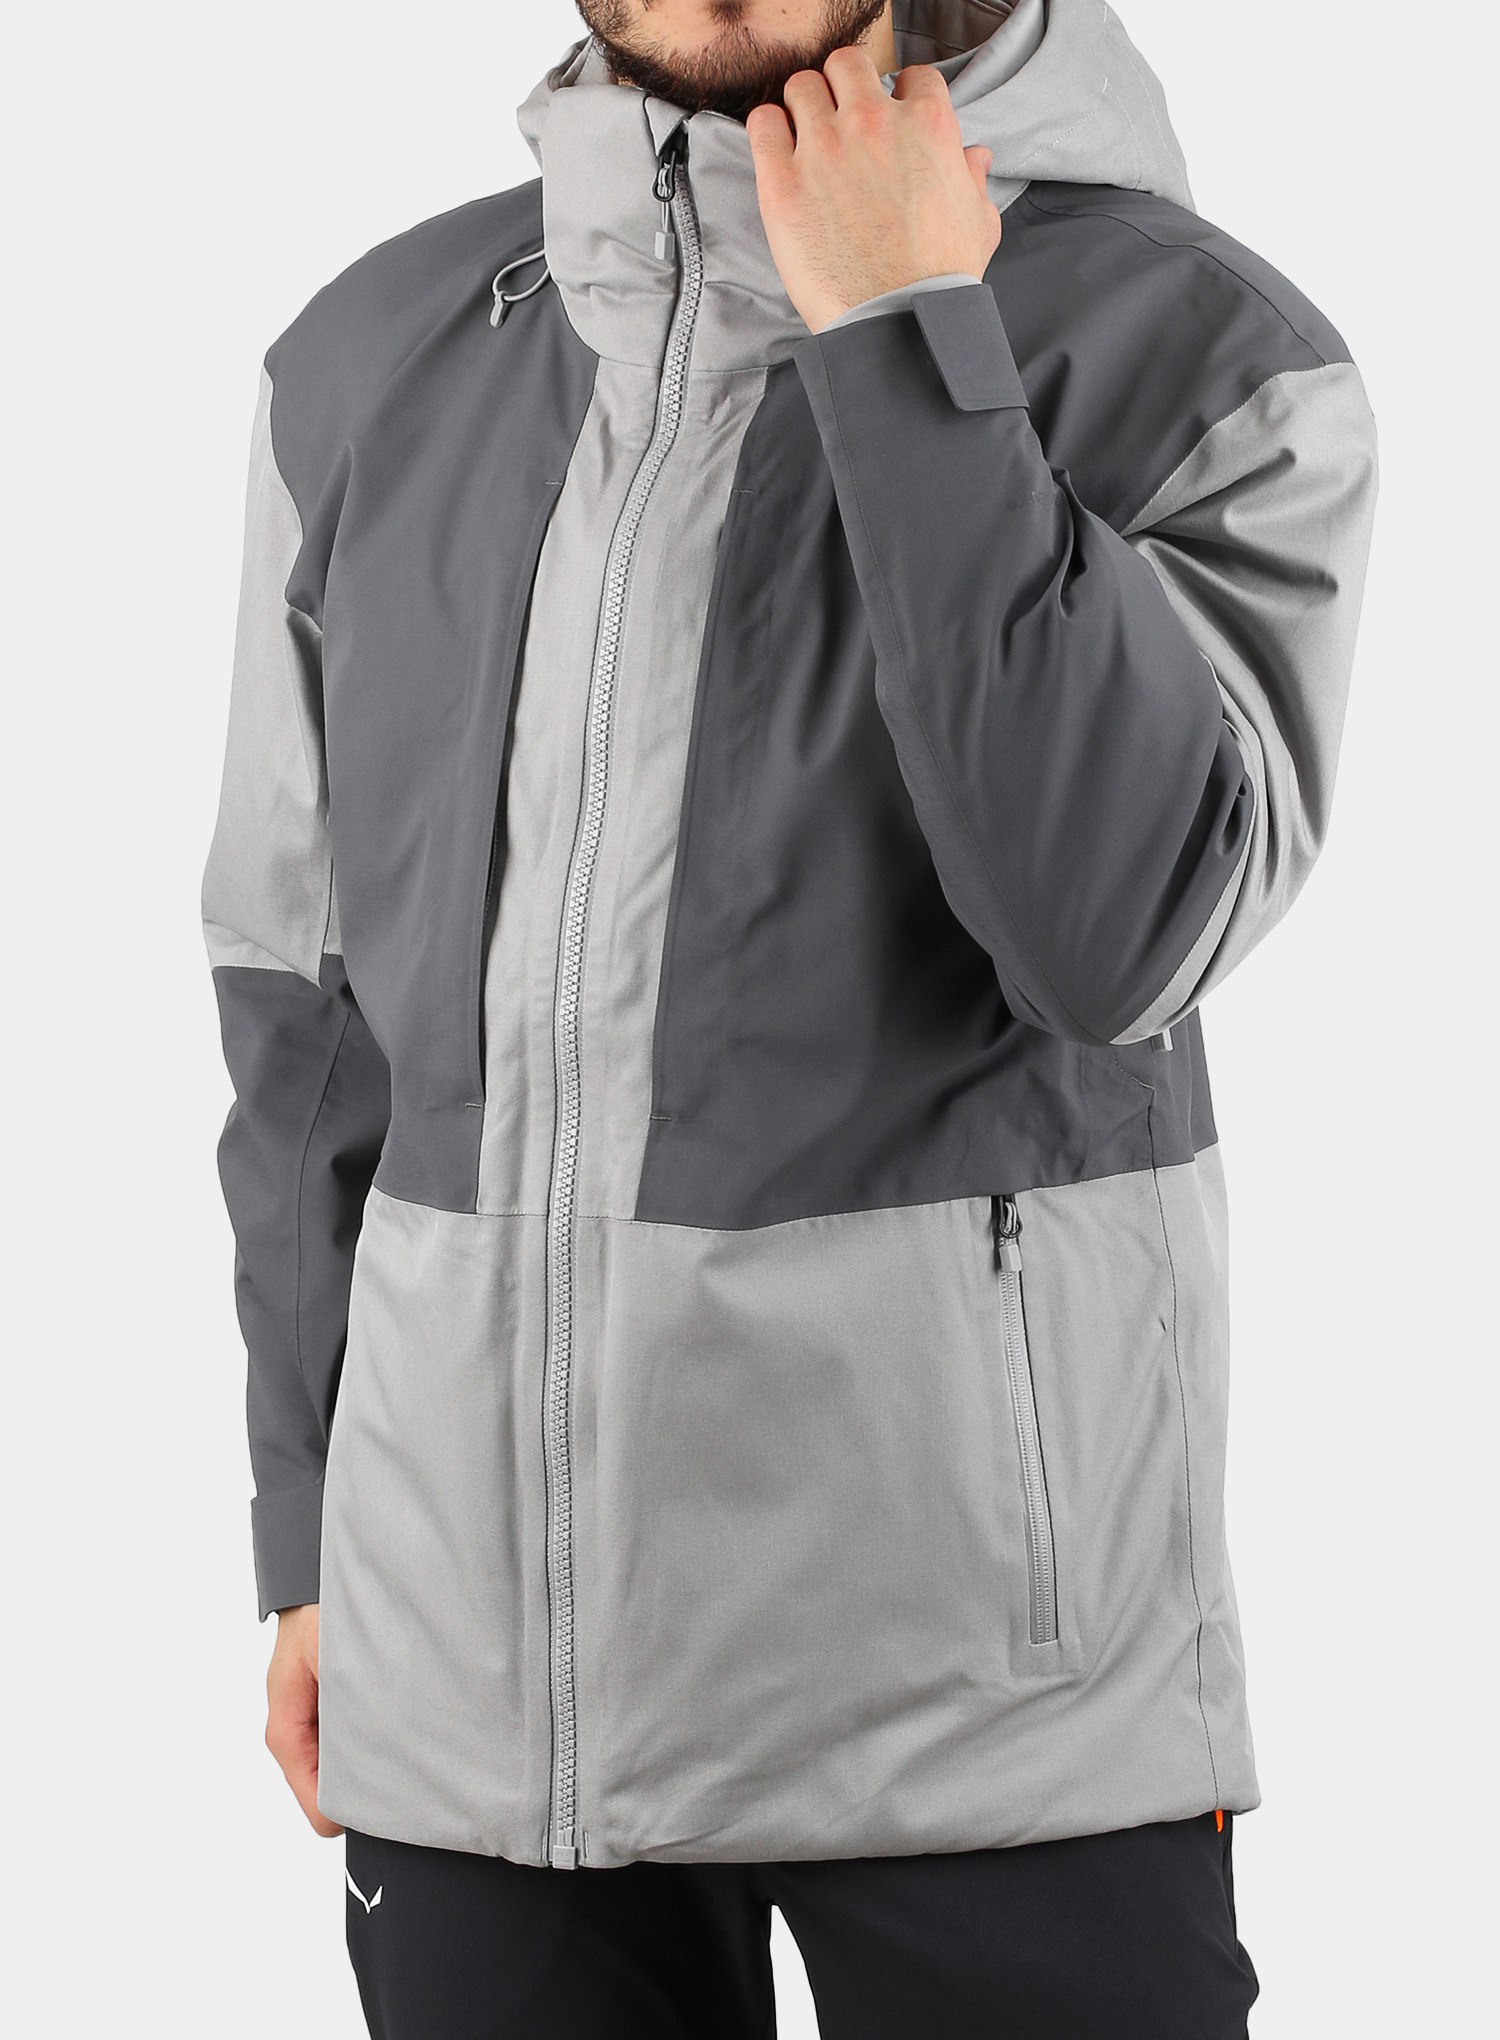 Kurtka The North Face Chakal Jacket - meld grey/vanadis grey - zdjęcie nr. 3